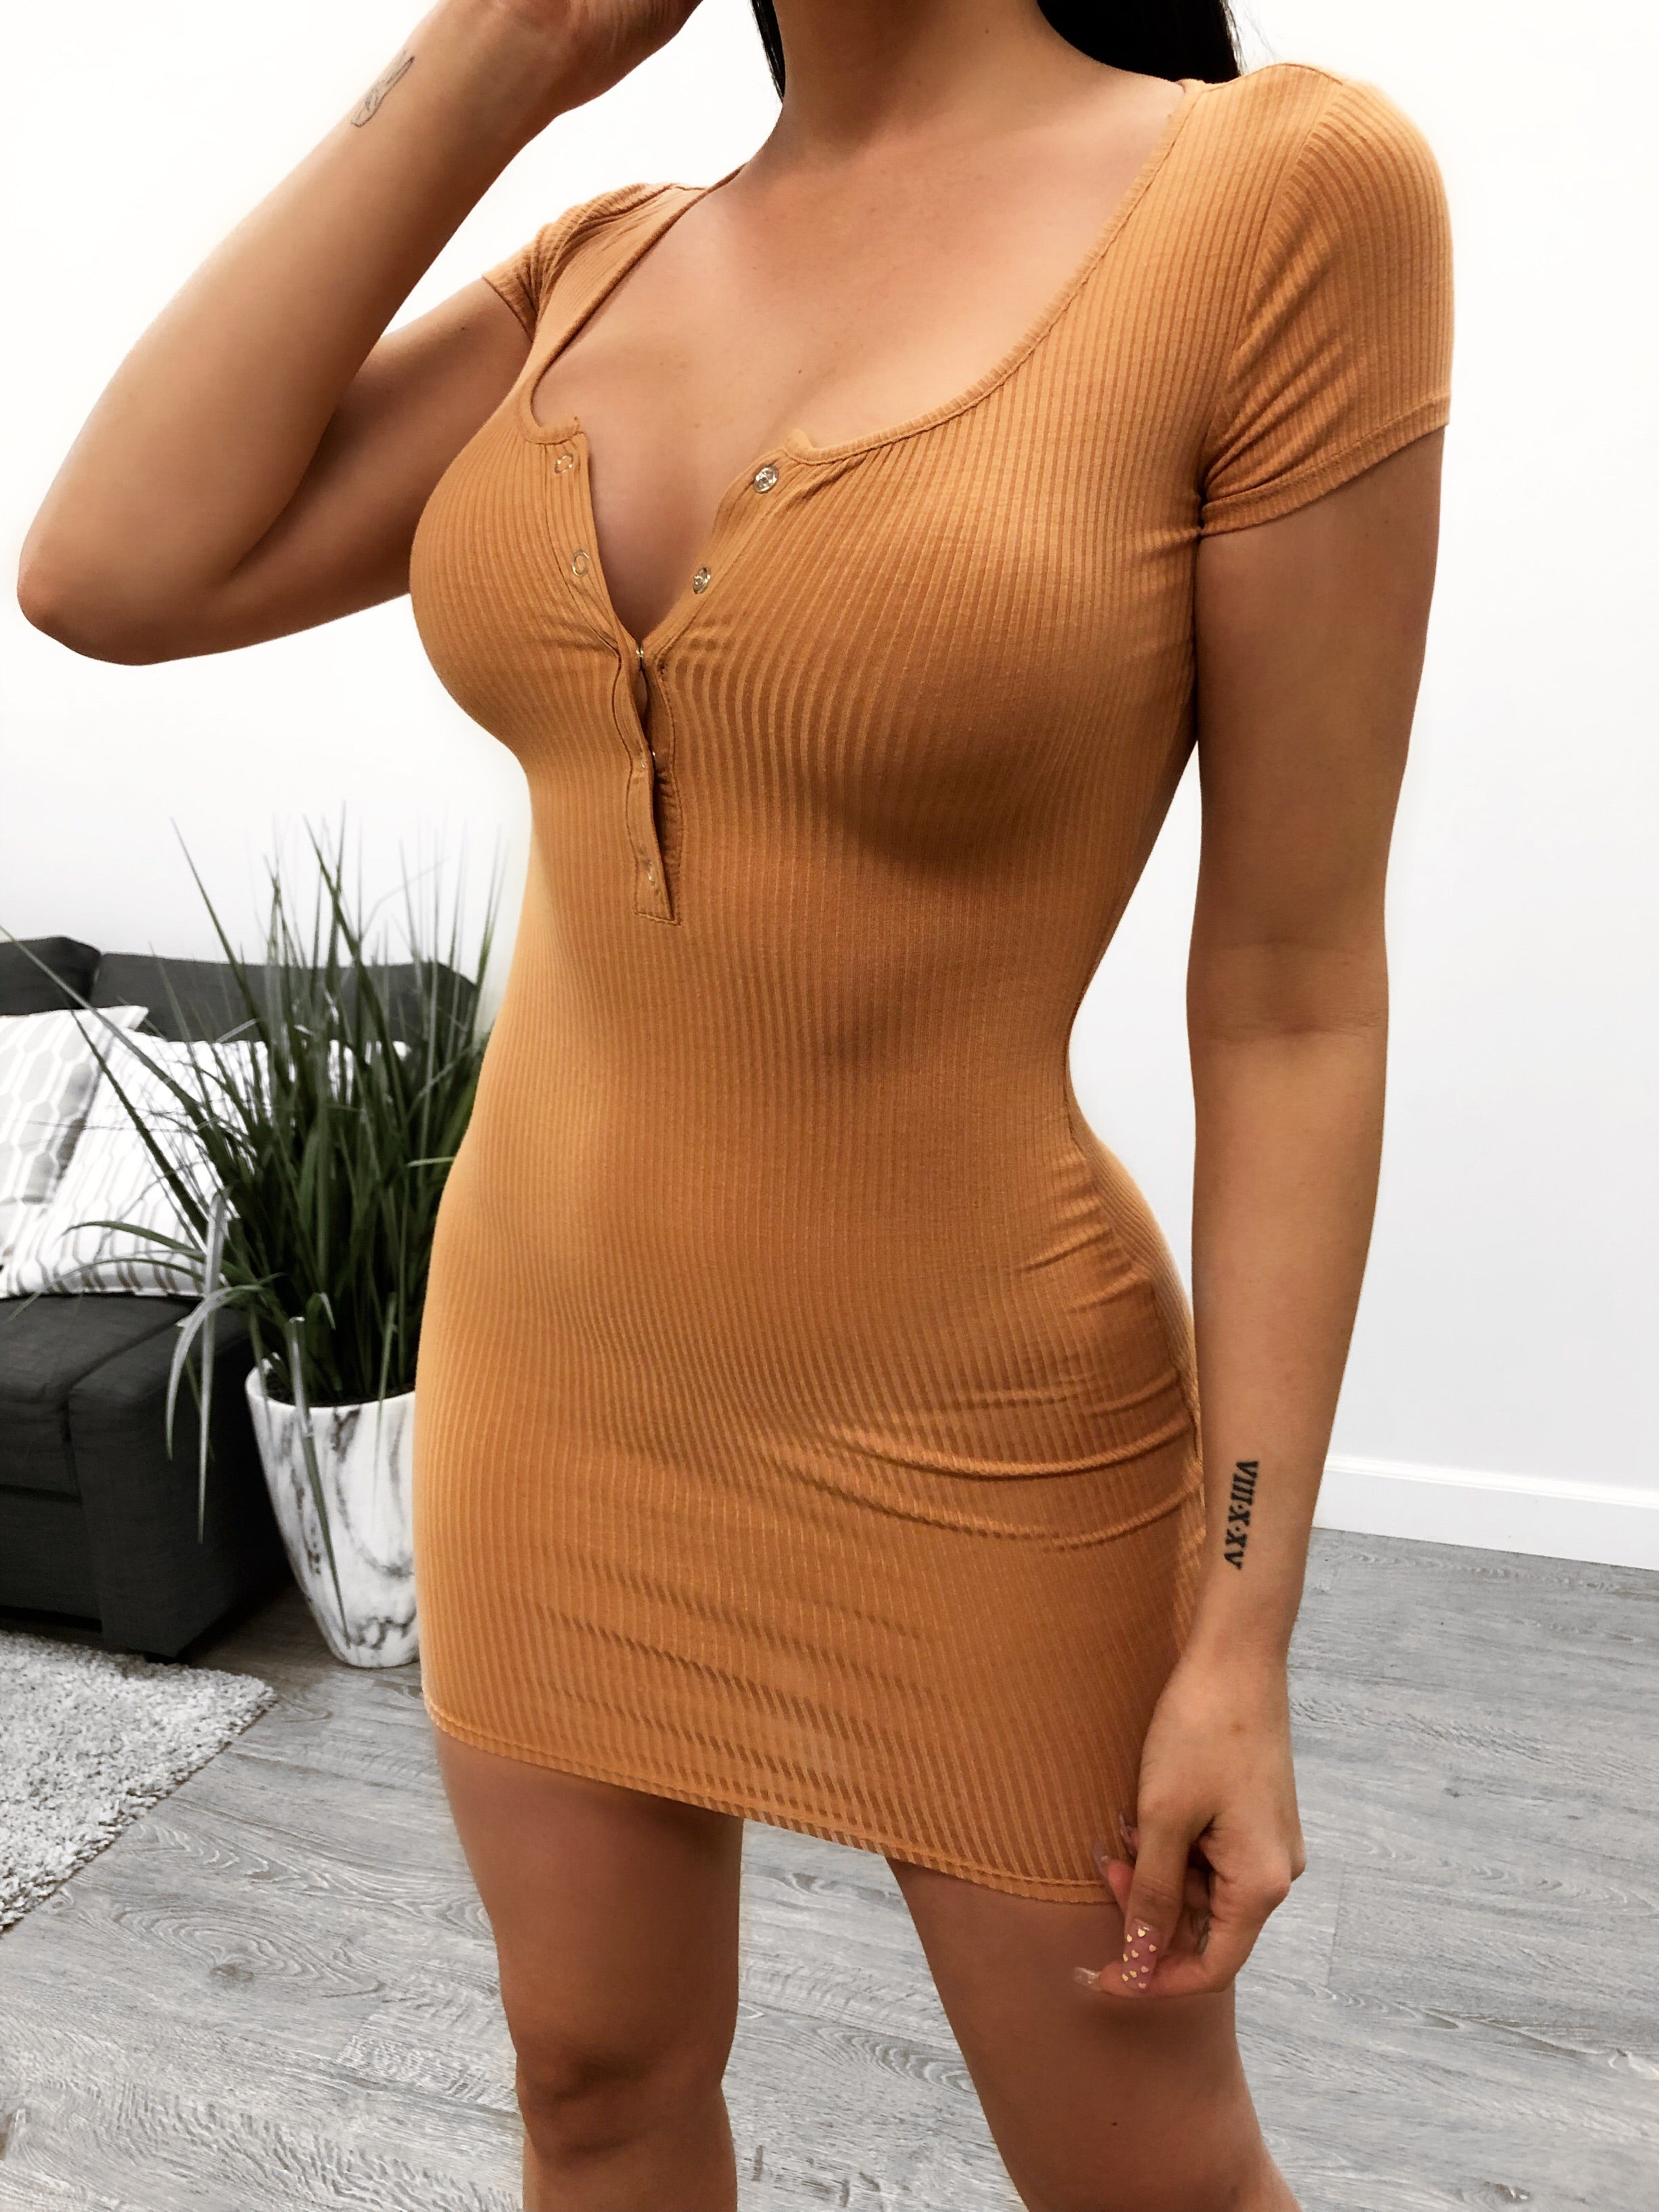 orange rust like short dress. short sleeves. adjustable silver flat buttons in middle cheat area. above mid thigh length. very tight.